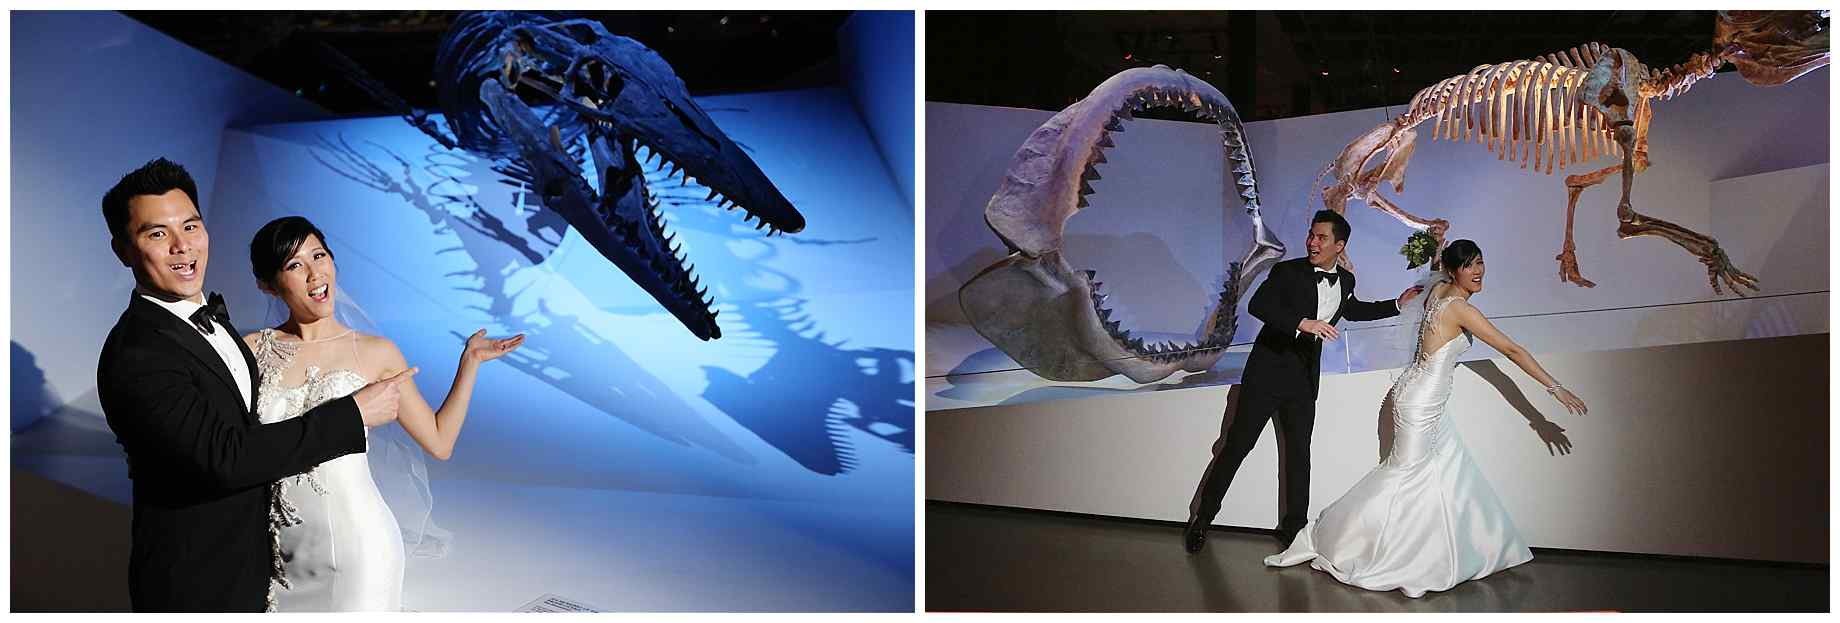 houston-museum-of-natural-science-wedding-photos-014